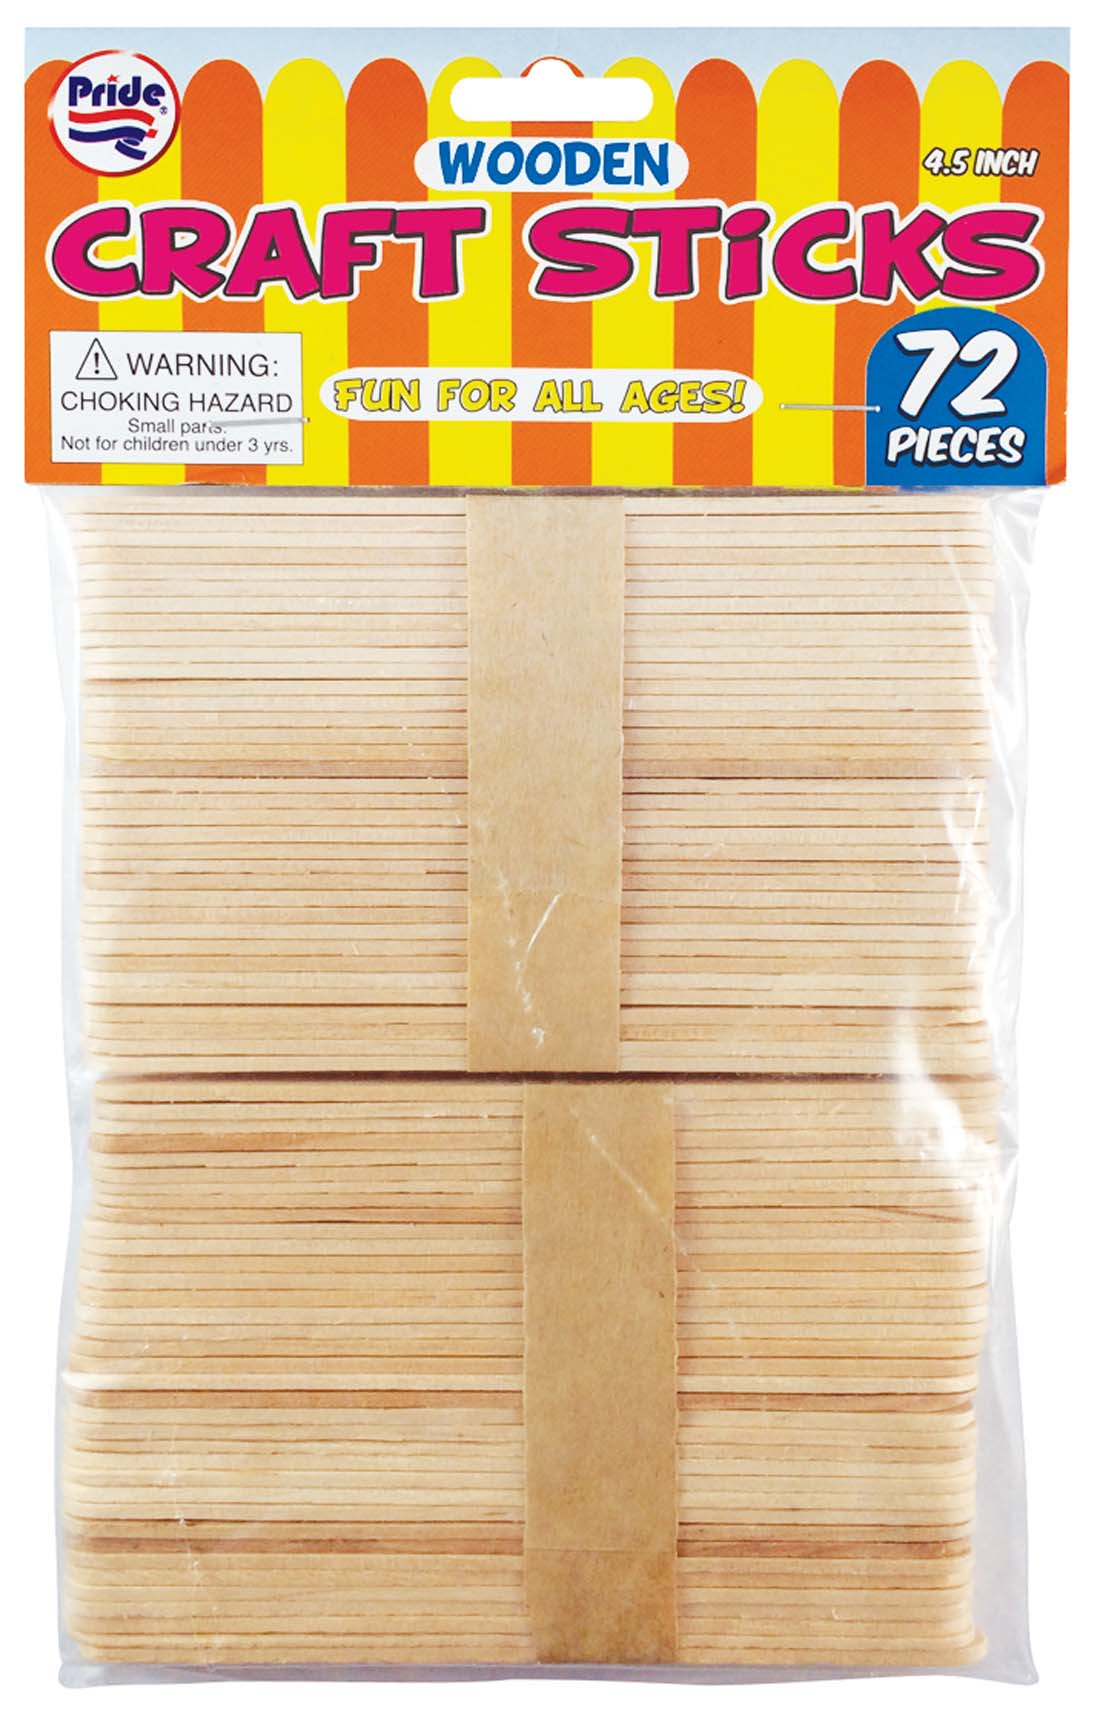 View WOODEN CRAFT STICK 72 PIECES 4.5 INCH